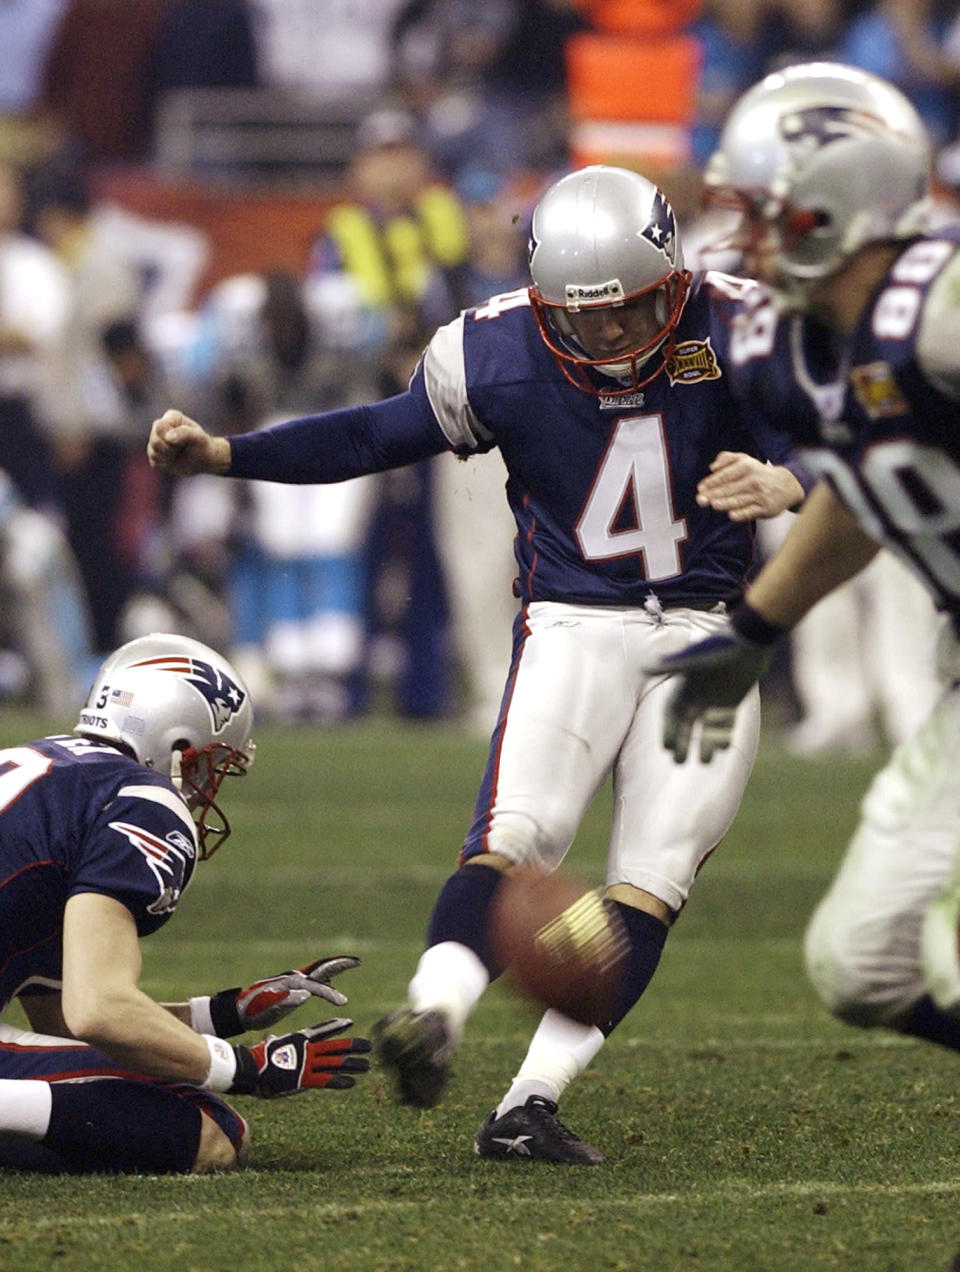 FILE - In this Feb. 1, 2004, file photo, New England Patriots kicker Adam Vinatieri (4) kicks the winning field goal in the final seconds to defeat the Carolina Panthers in Super Bowl XXXVIII at Reliant Stadium in Houston. For the second time in three years, Vinatieri made the winning field goal to lift New England to the NFL title. (AP Photo/Elise Amendola, File)